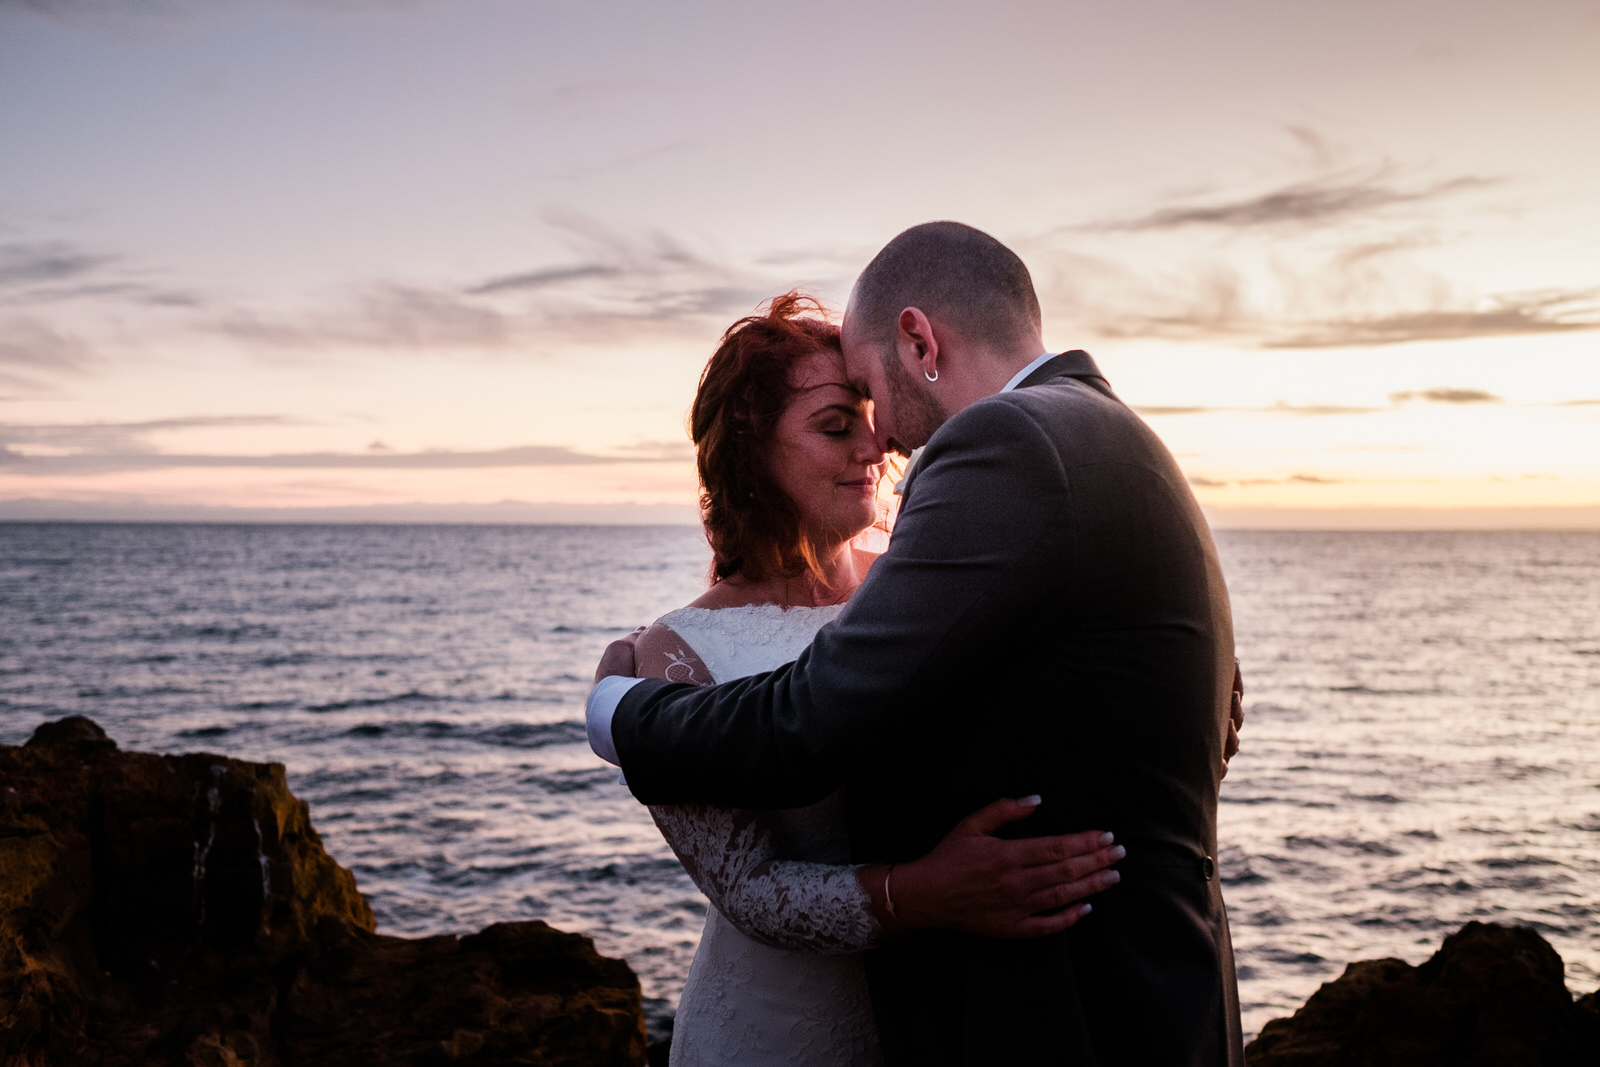 romantic-sunset-wedding-couple-hugging-by-the-ocean-clifftop